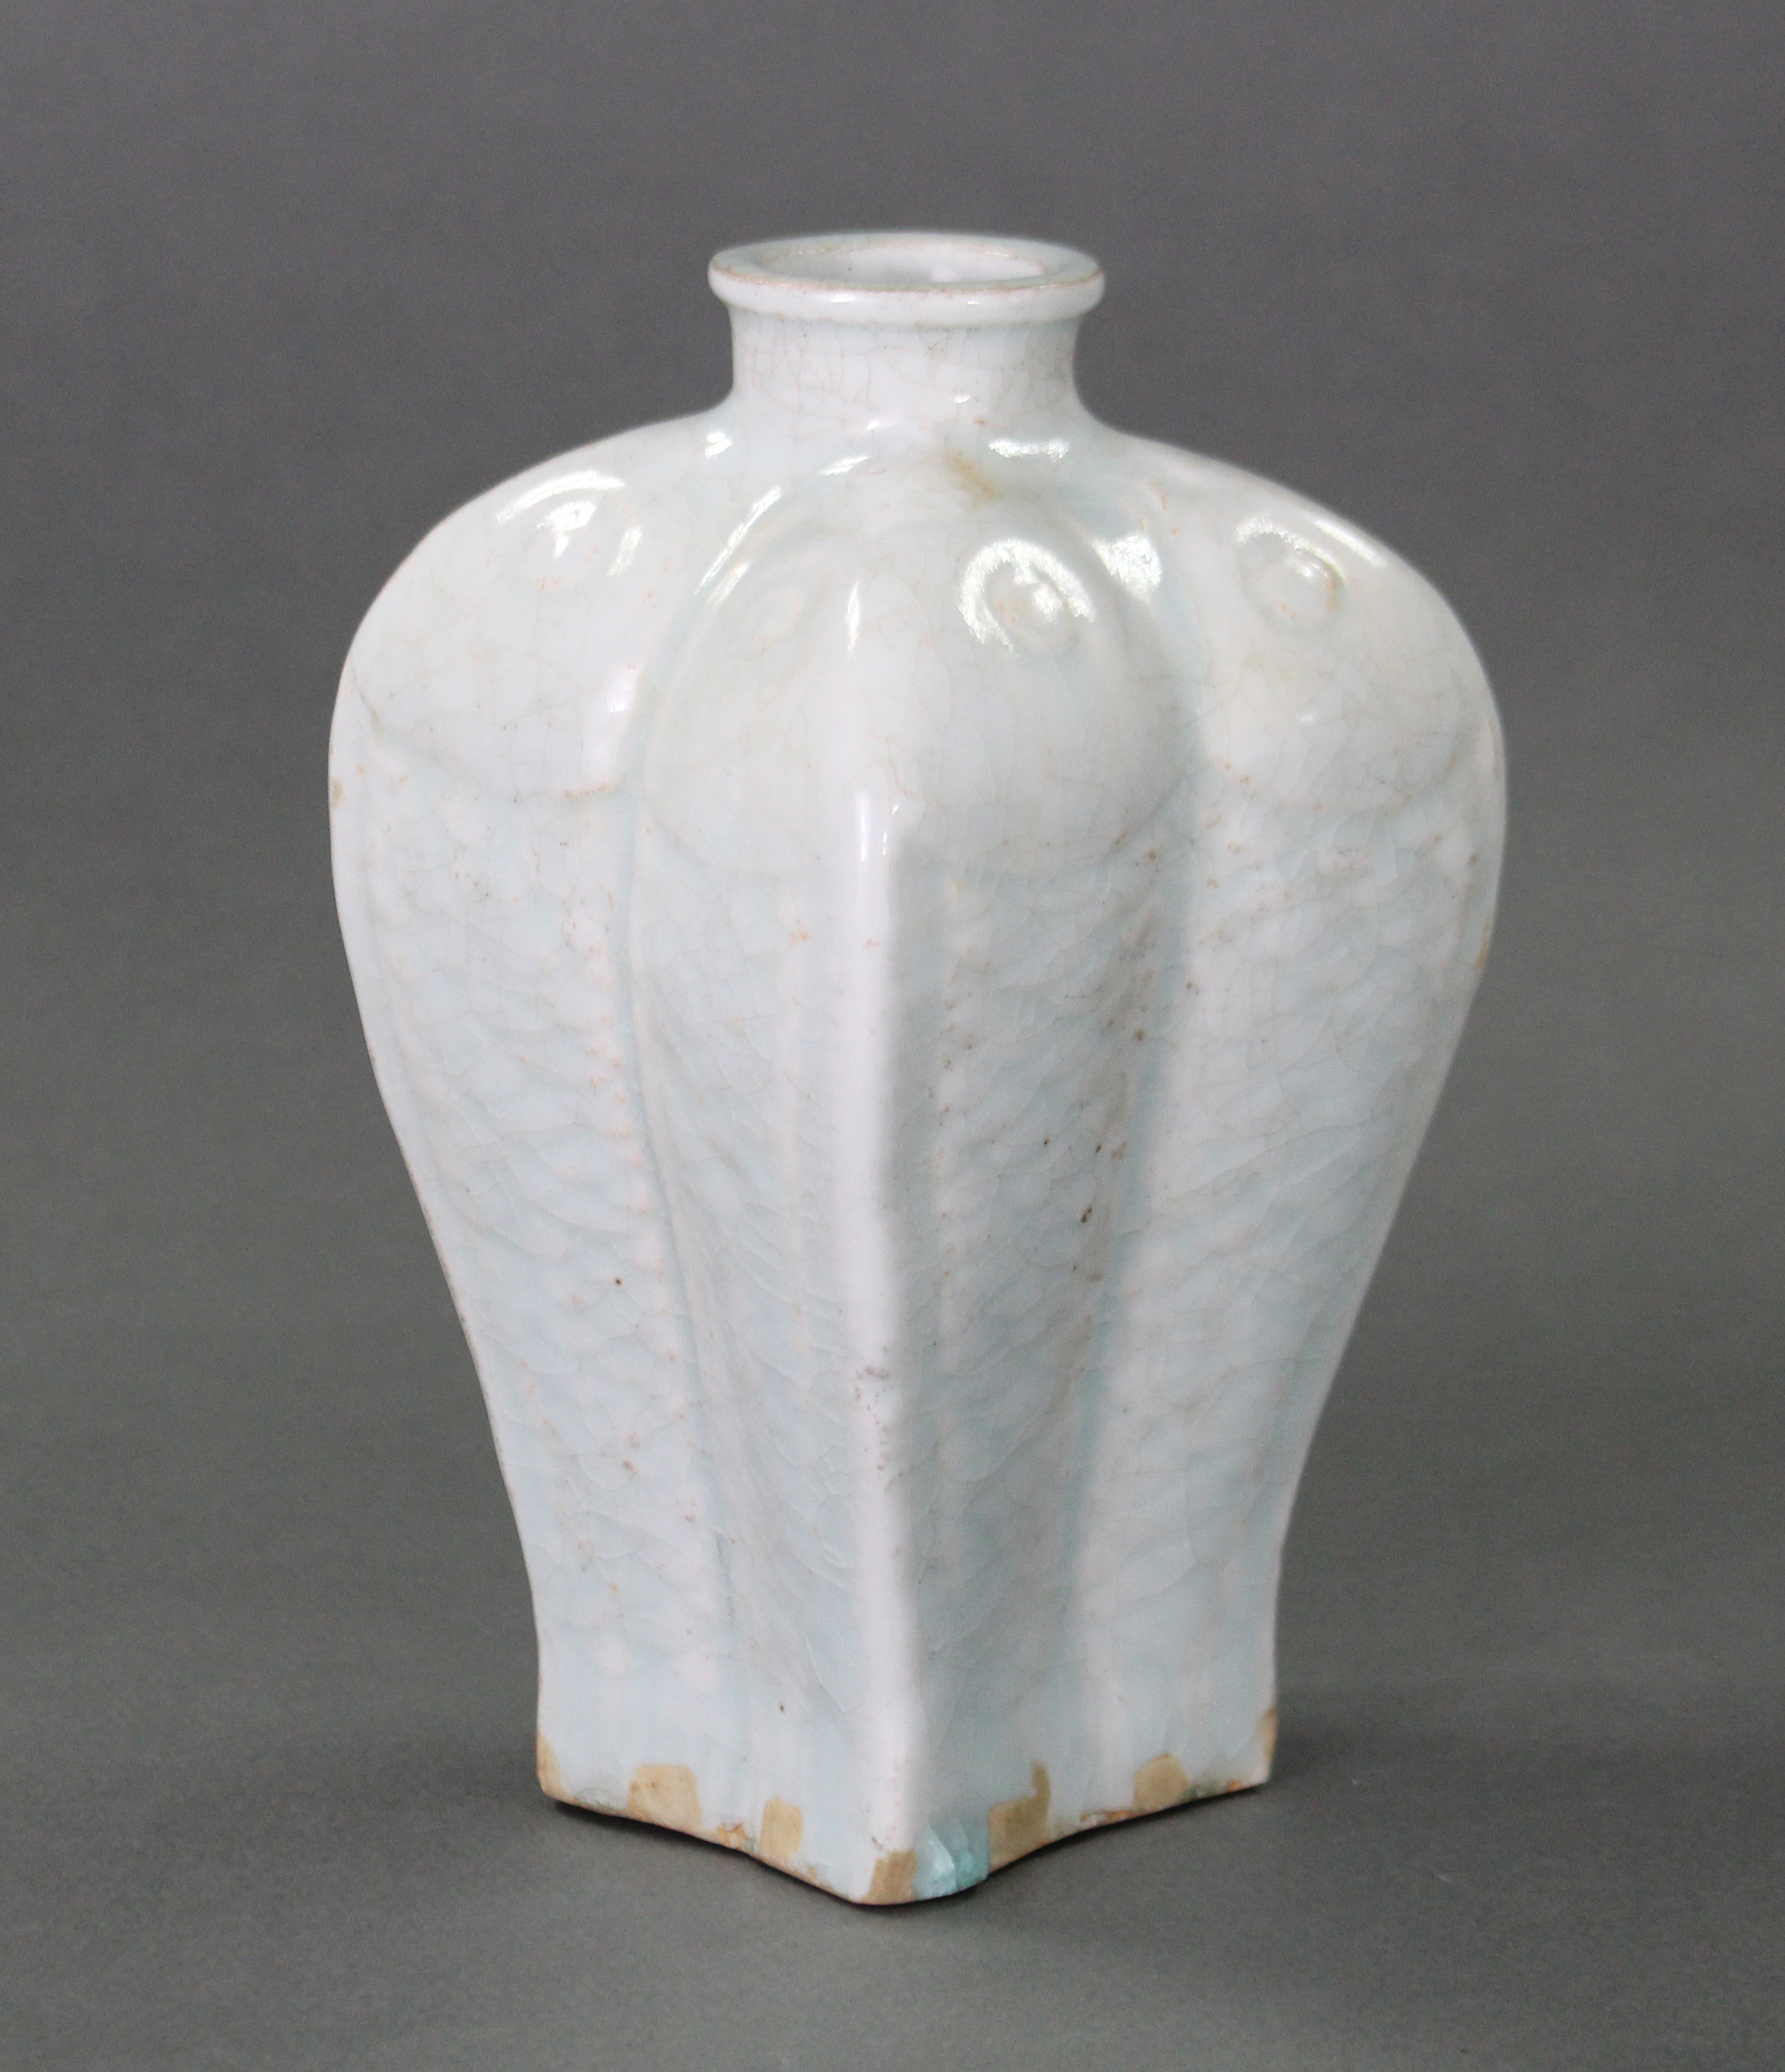 Lot 216 - An unusual oriental porcelain baluster vase moulded in low relief as four conjoined fish, with short